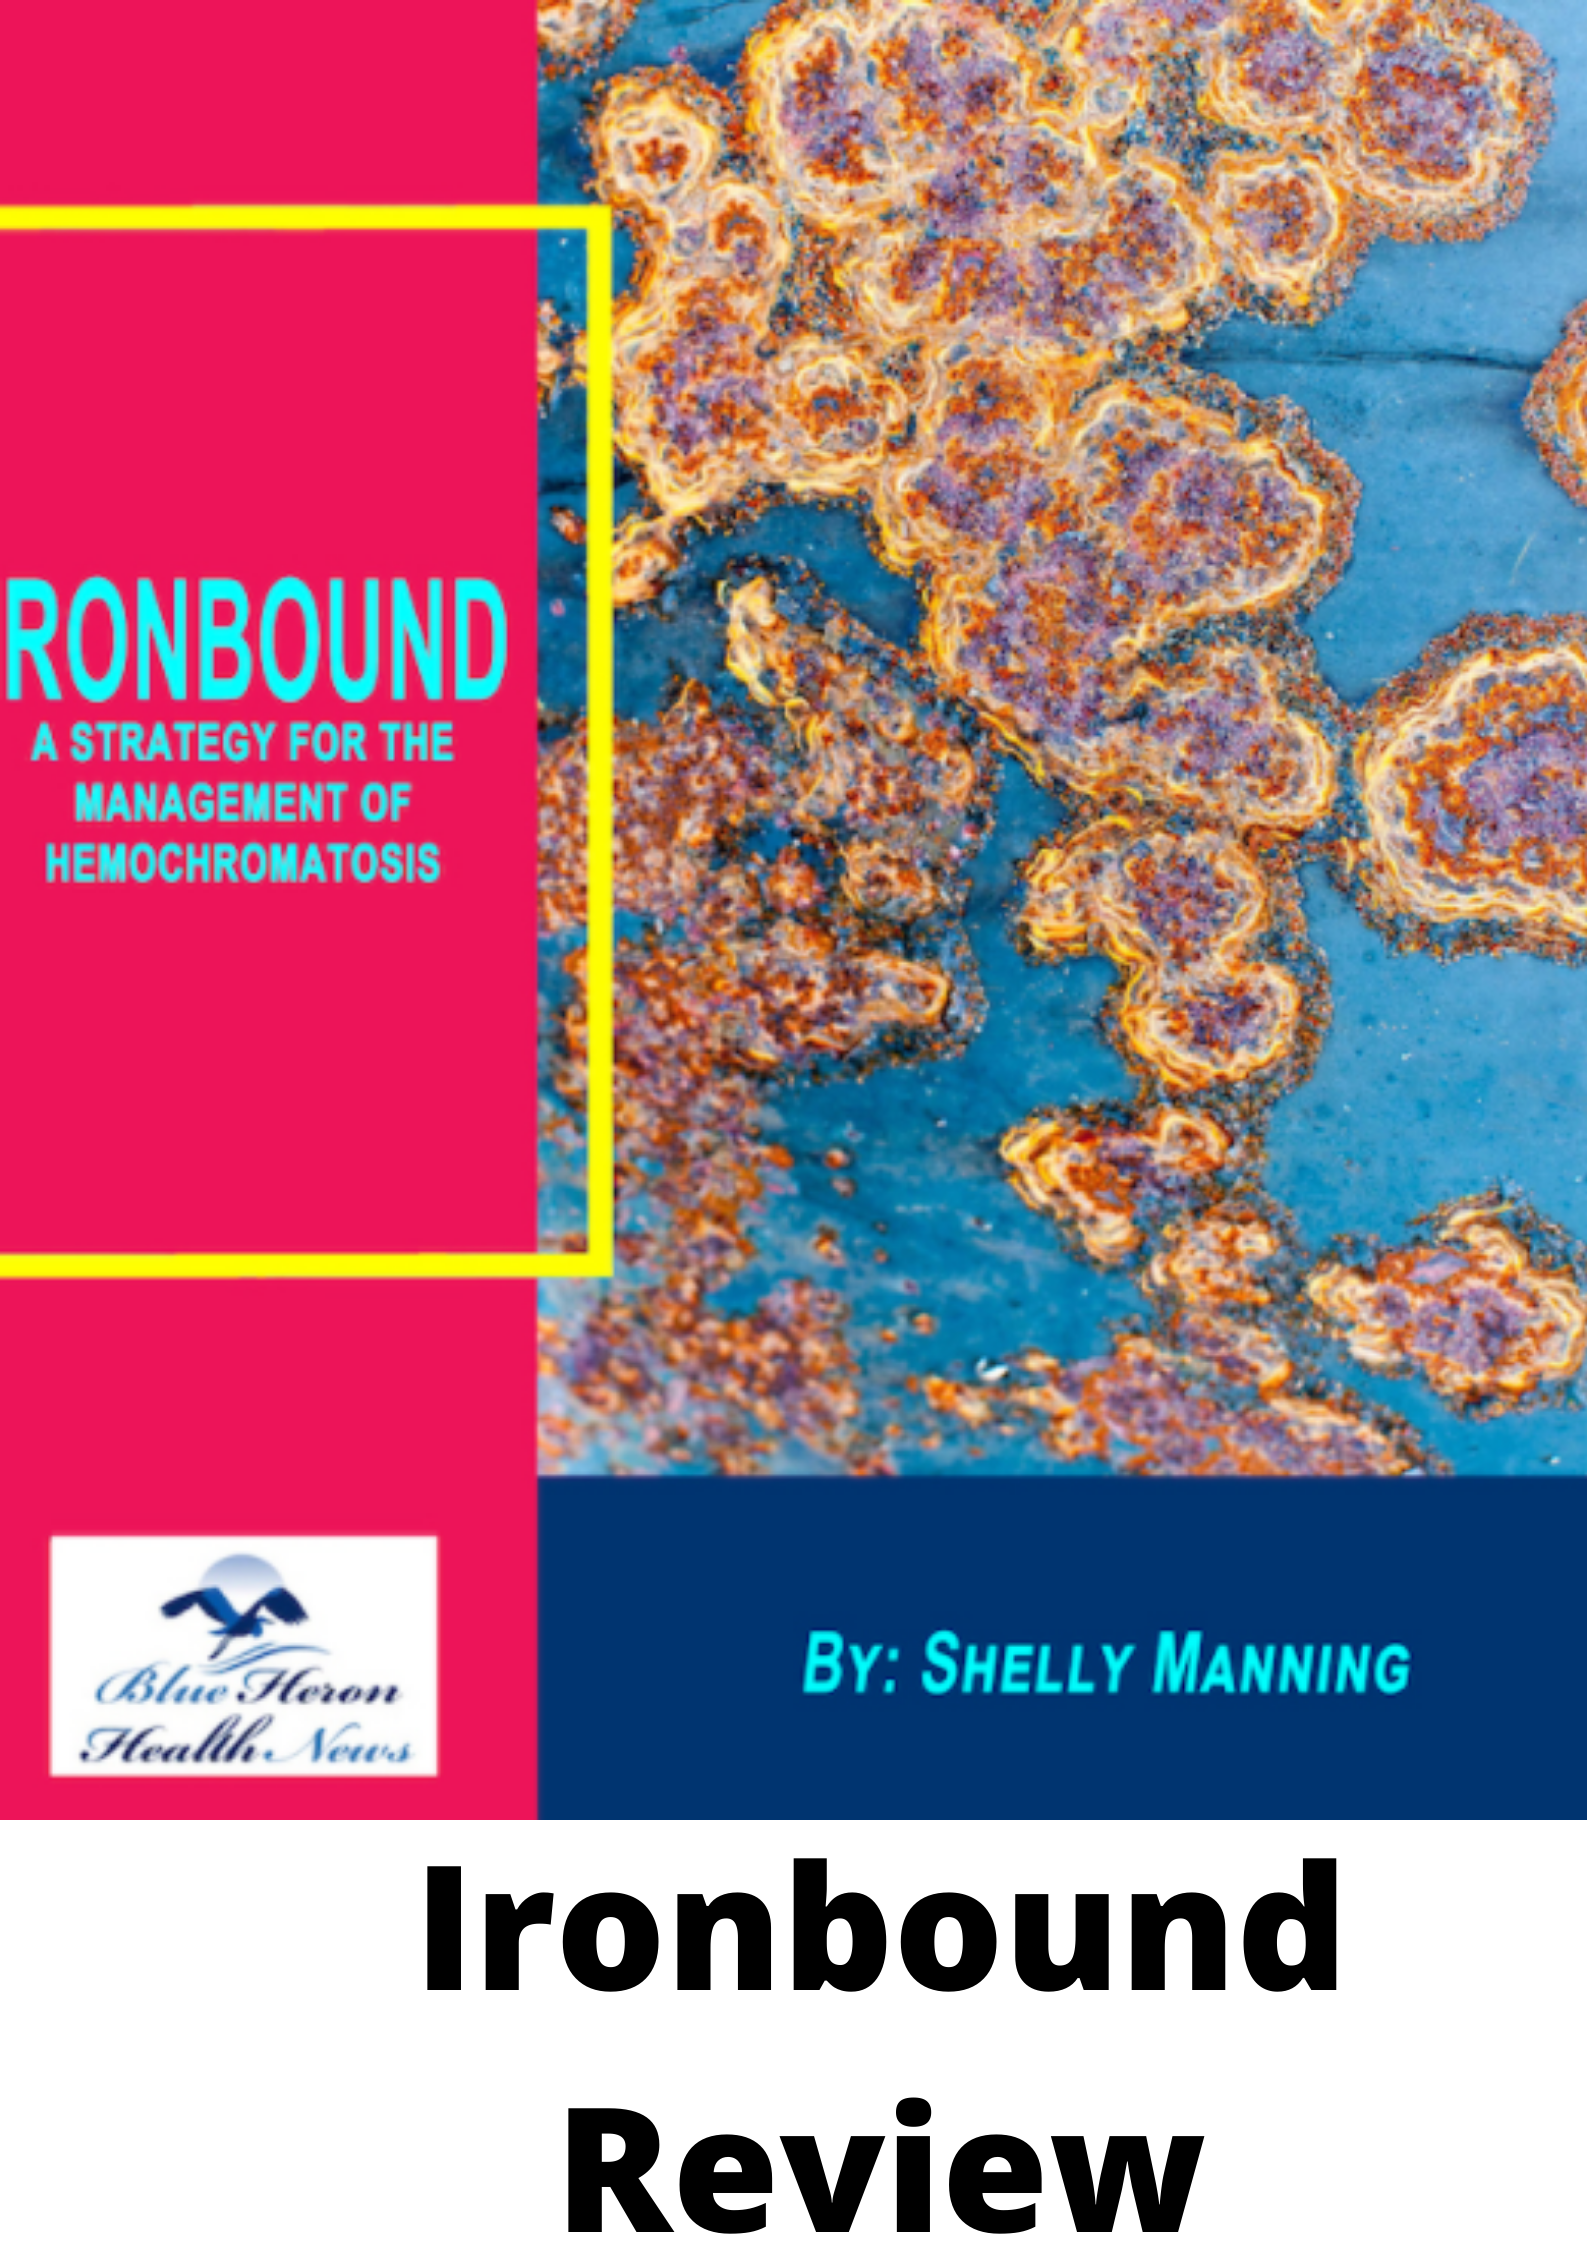 Ironbound Review- A strategy for management of hemochromatosis